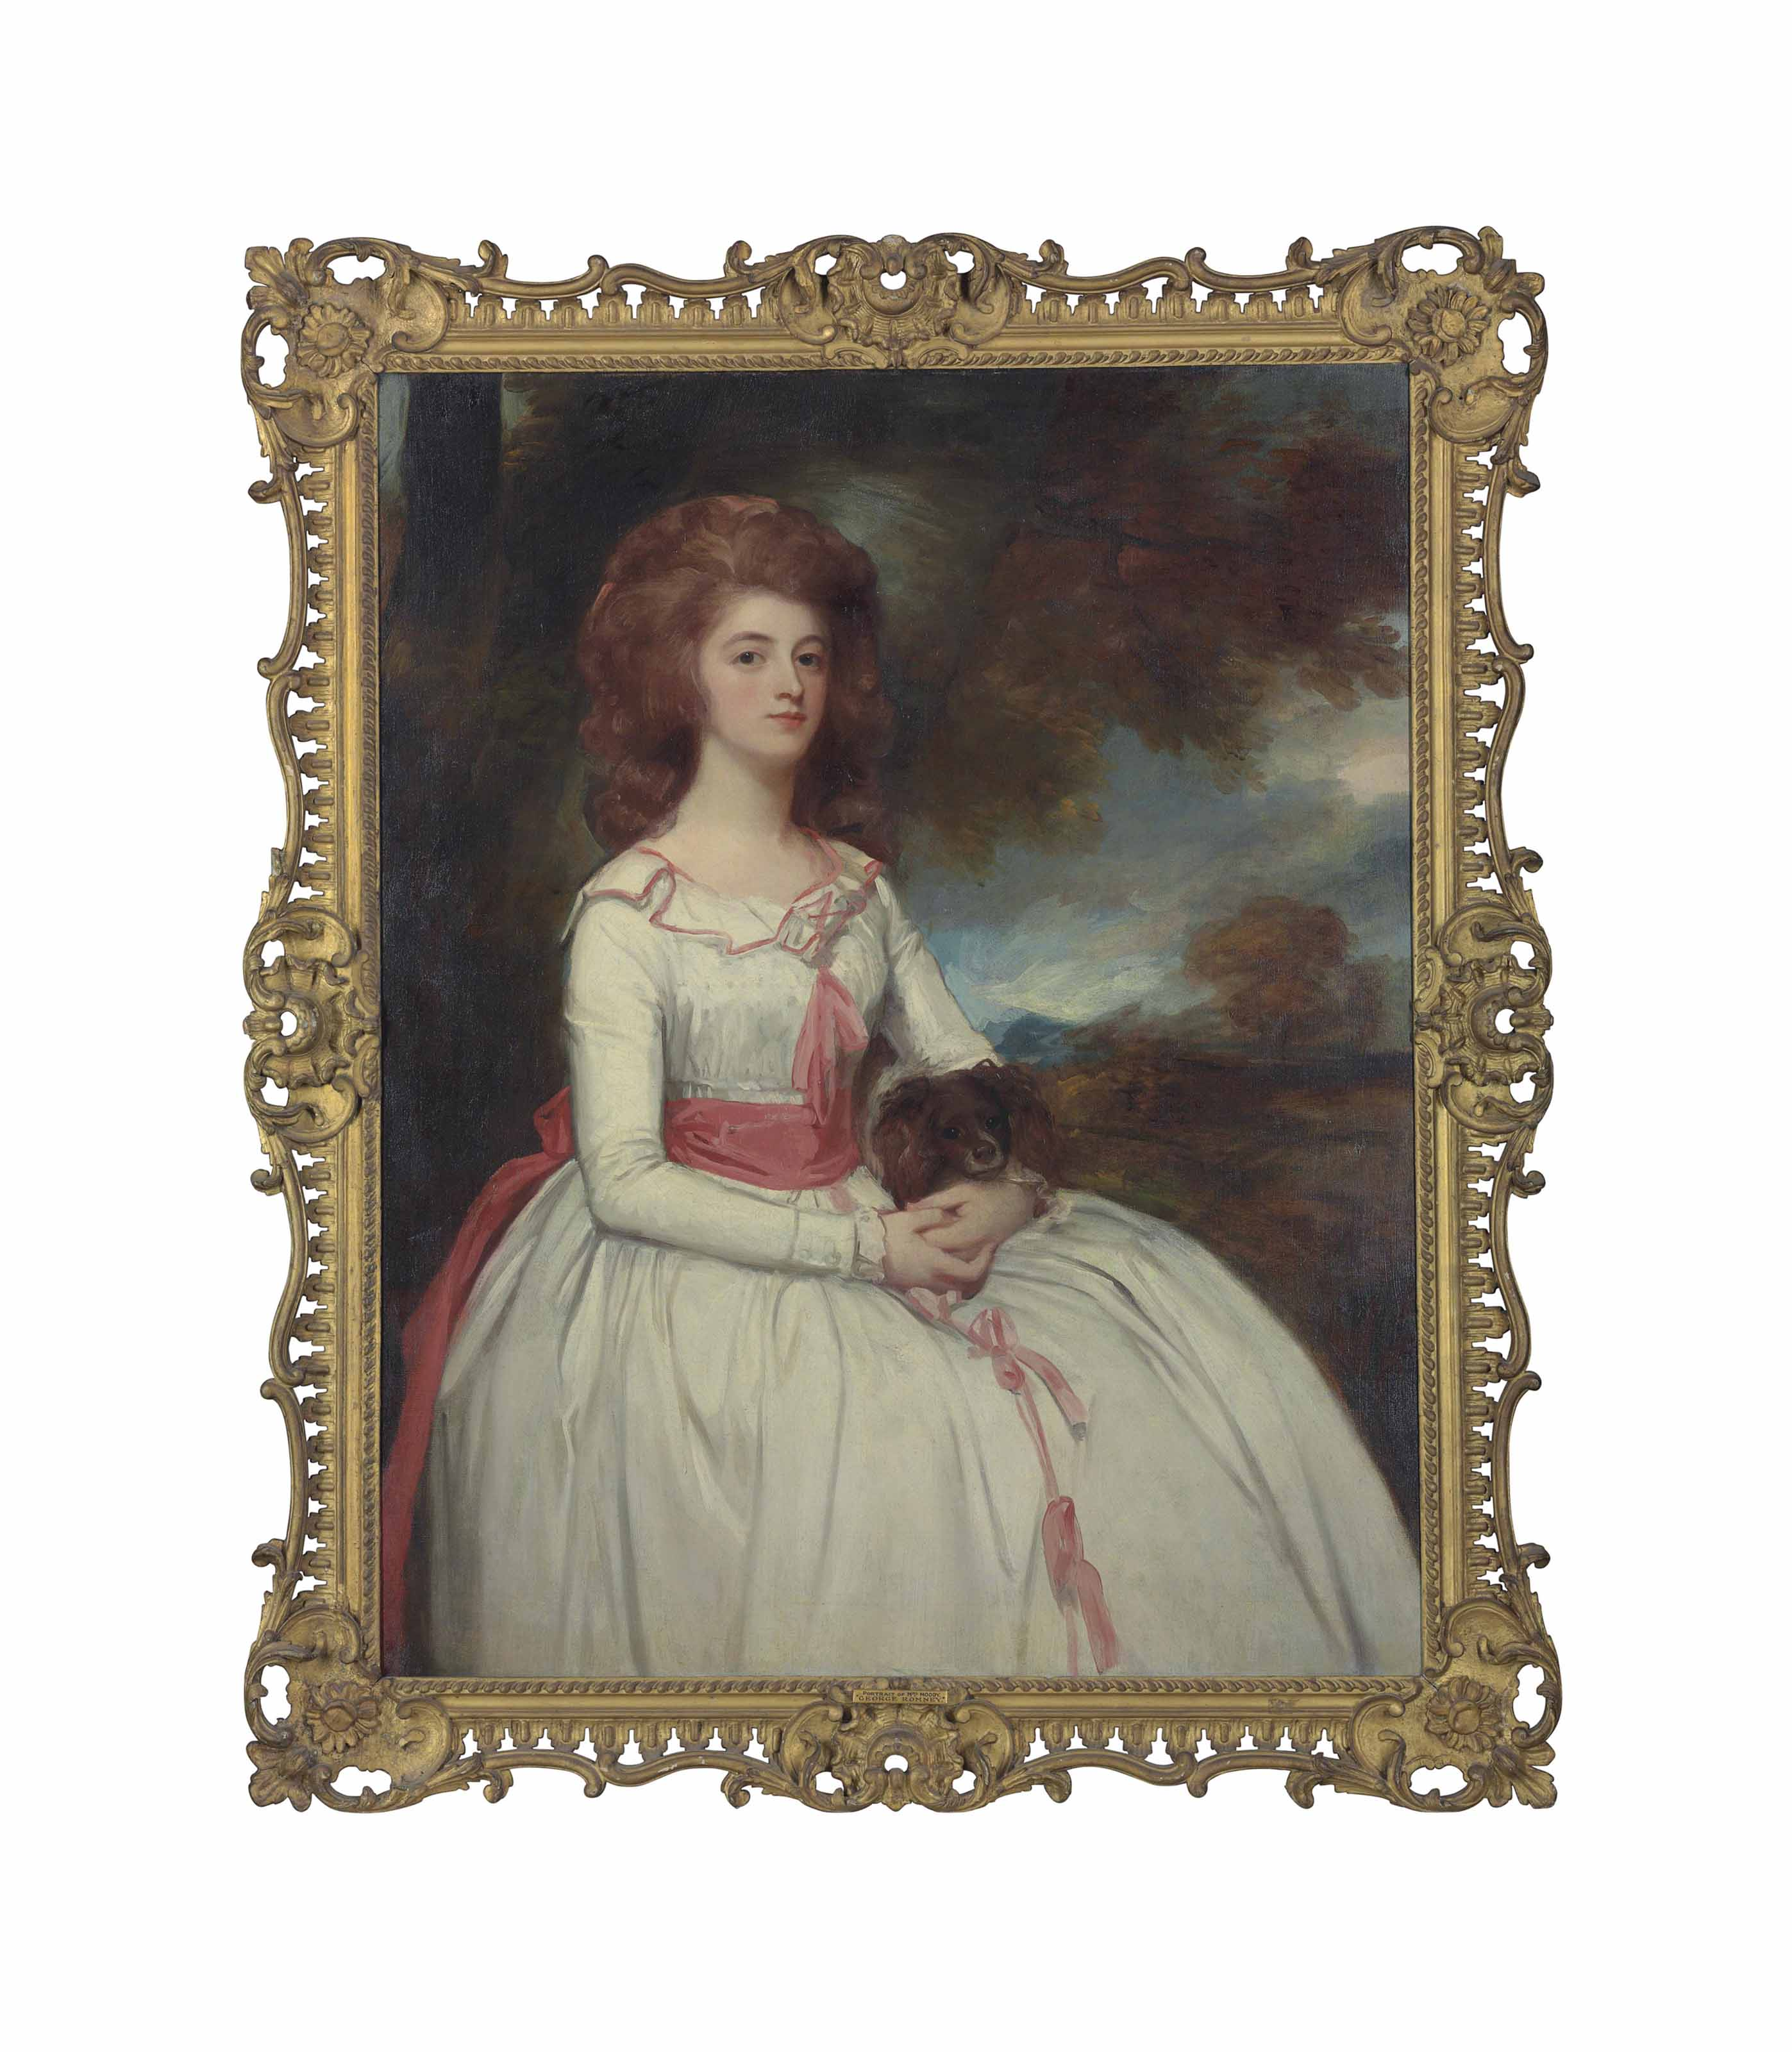 Portrait of Mrs Moody (c.1767-1820), second wife of Samuel Moody, three-quarter-length, in a white dress trimmed with pink bows and a pink sash, holding a dog in her lap, in a landscape